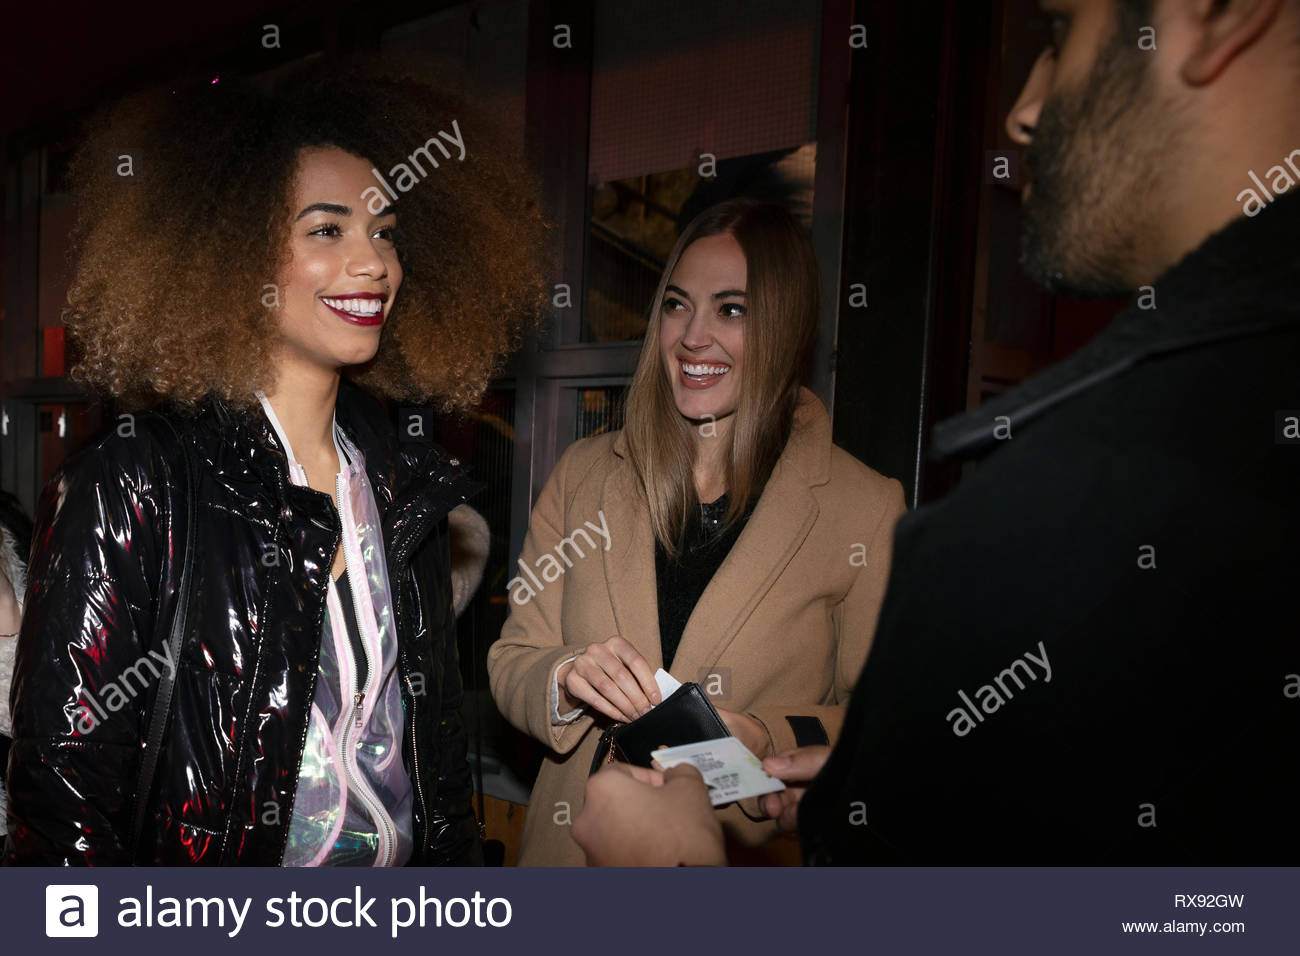 Women friends showing IDs to nightclub bouncer - Stock Image